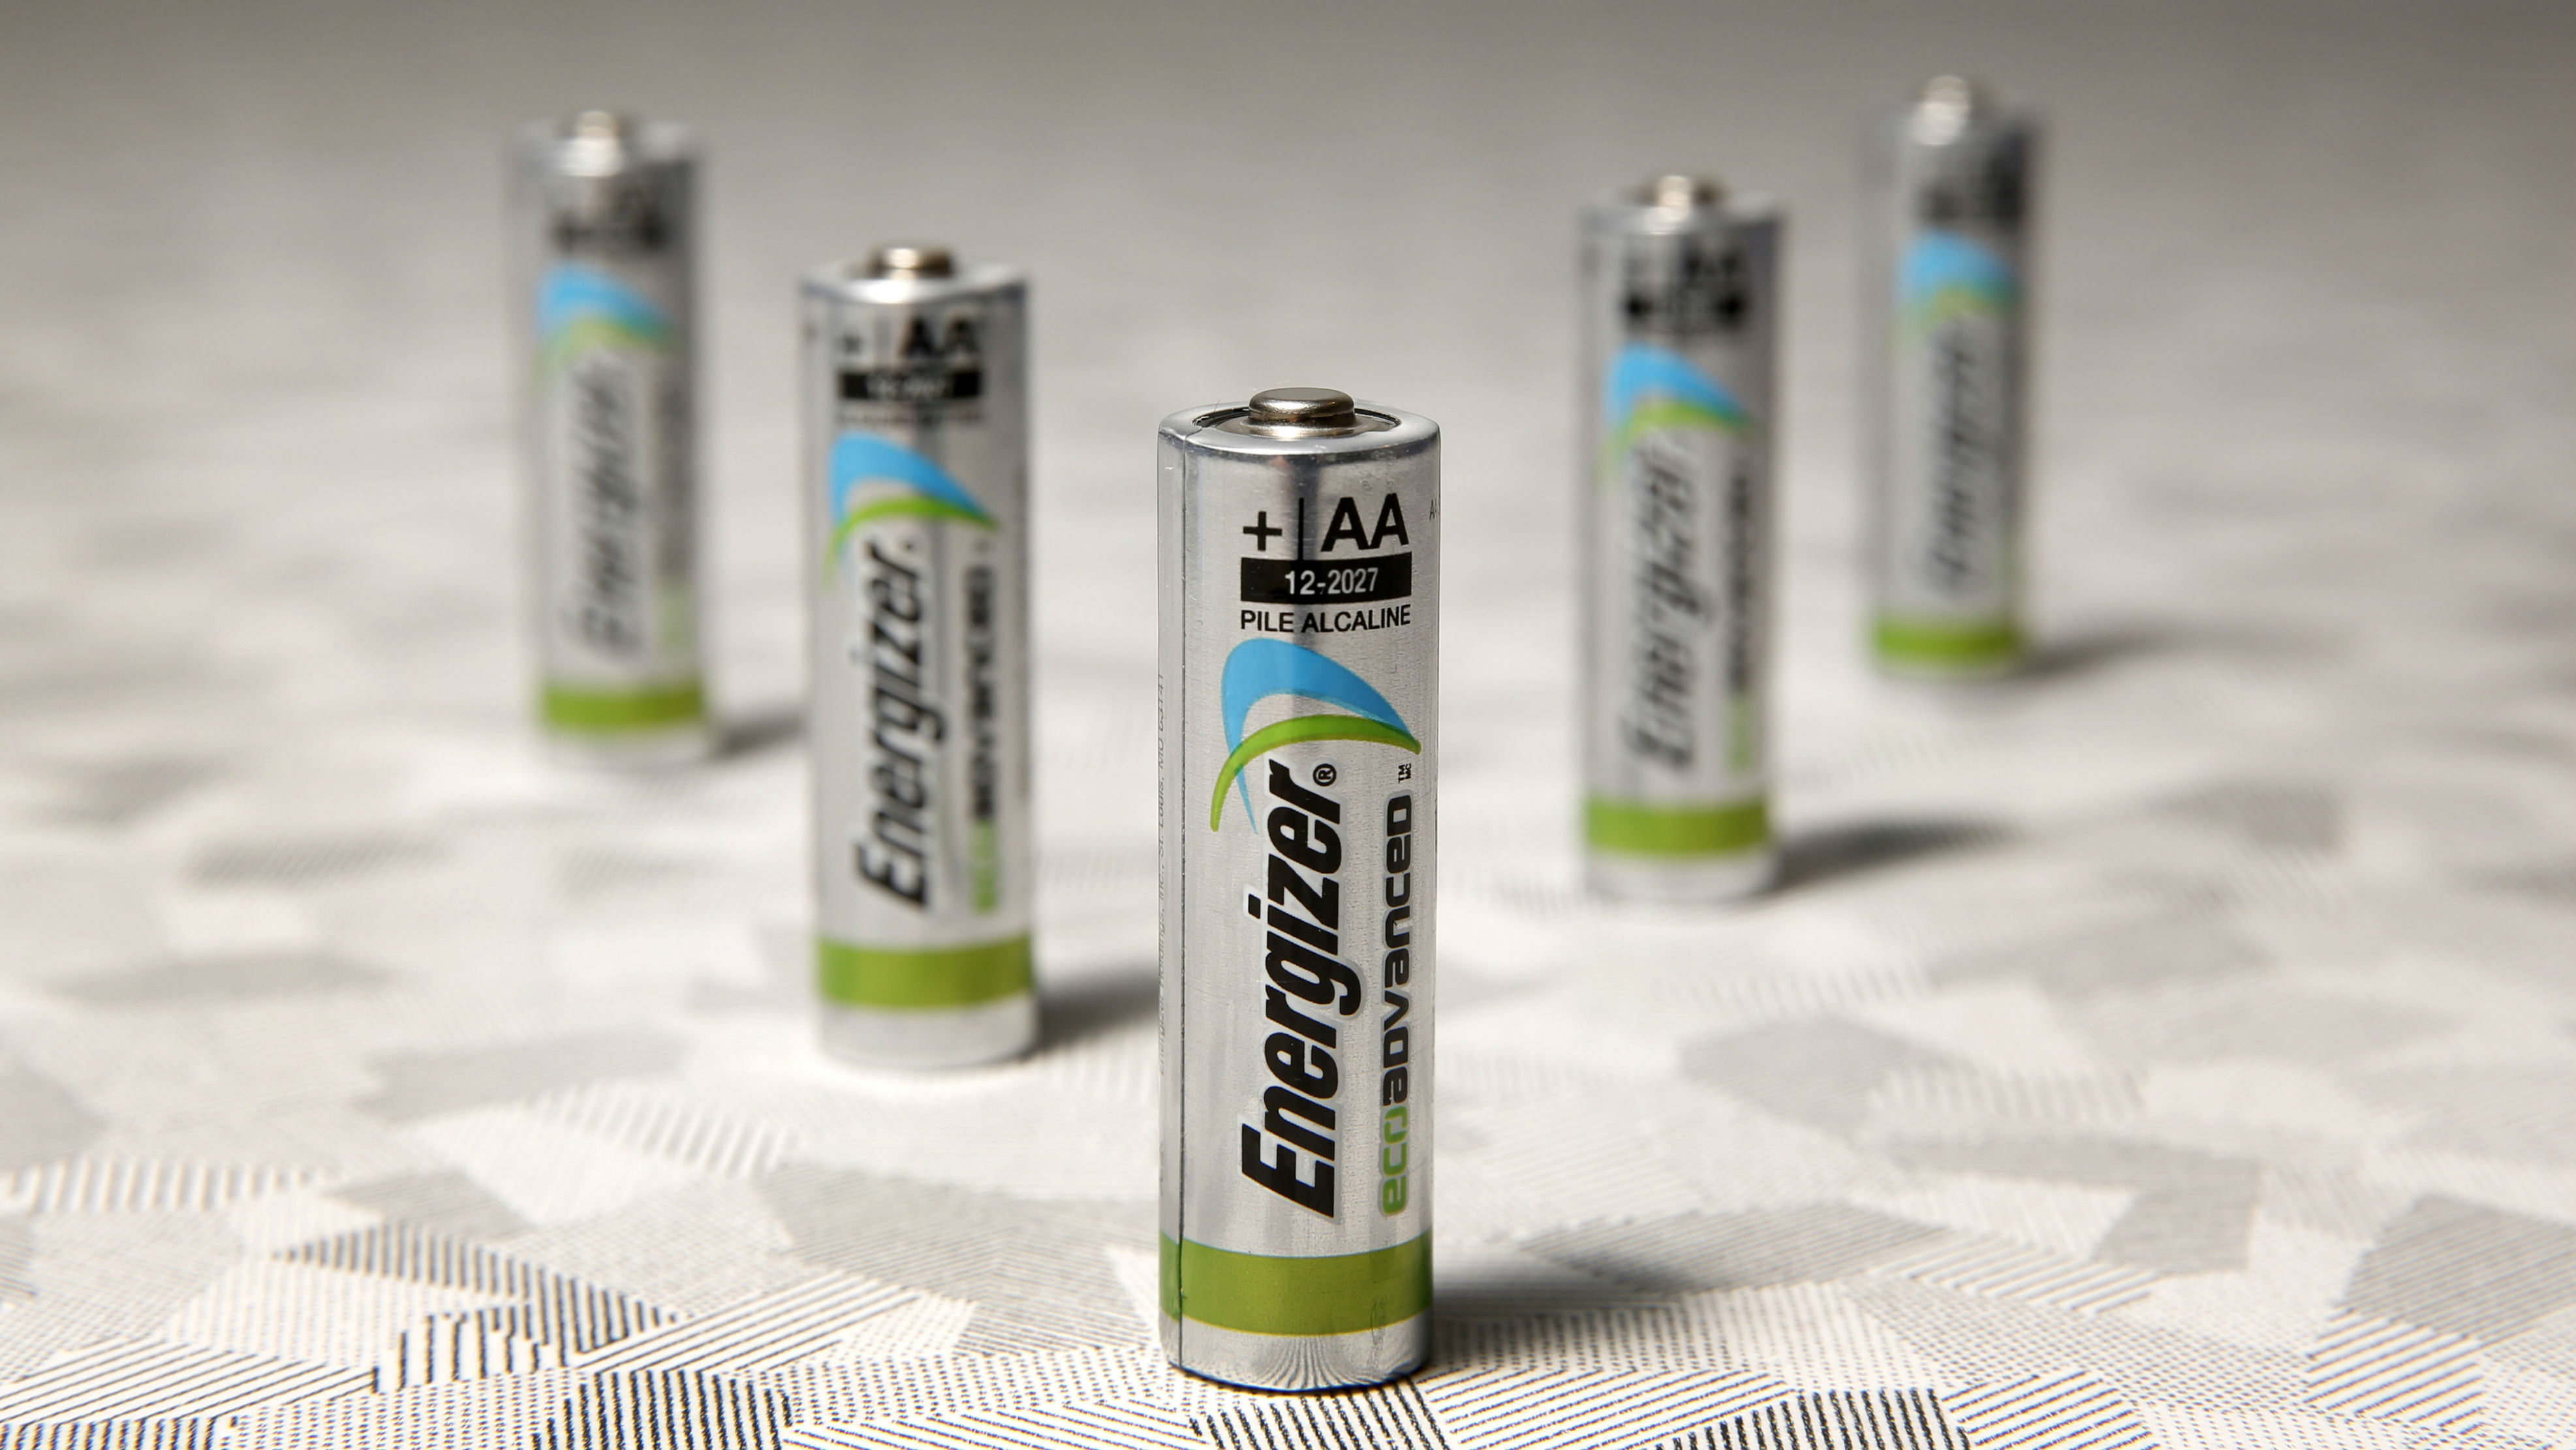 a lineup of five energizer batteries arranged in a pyramid shape.